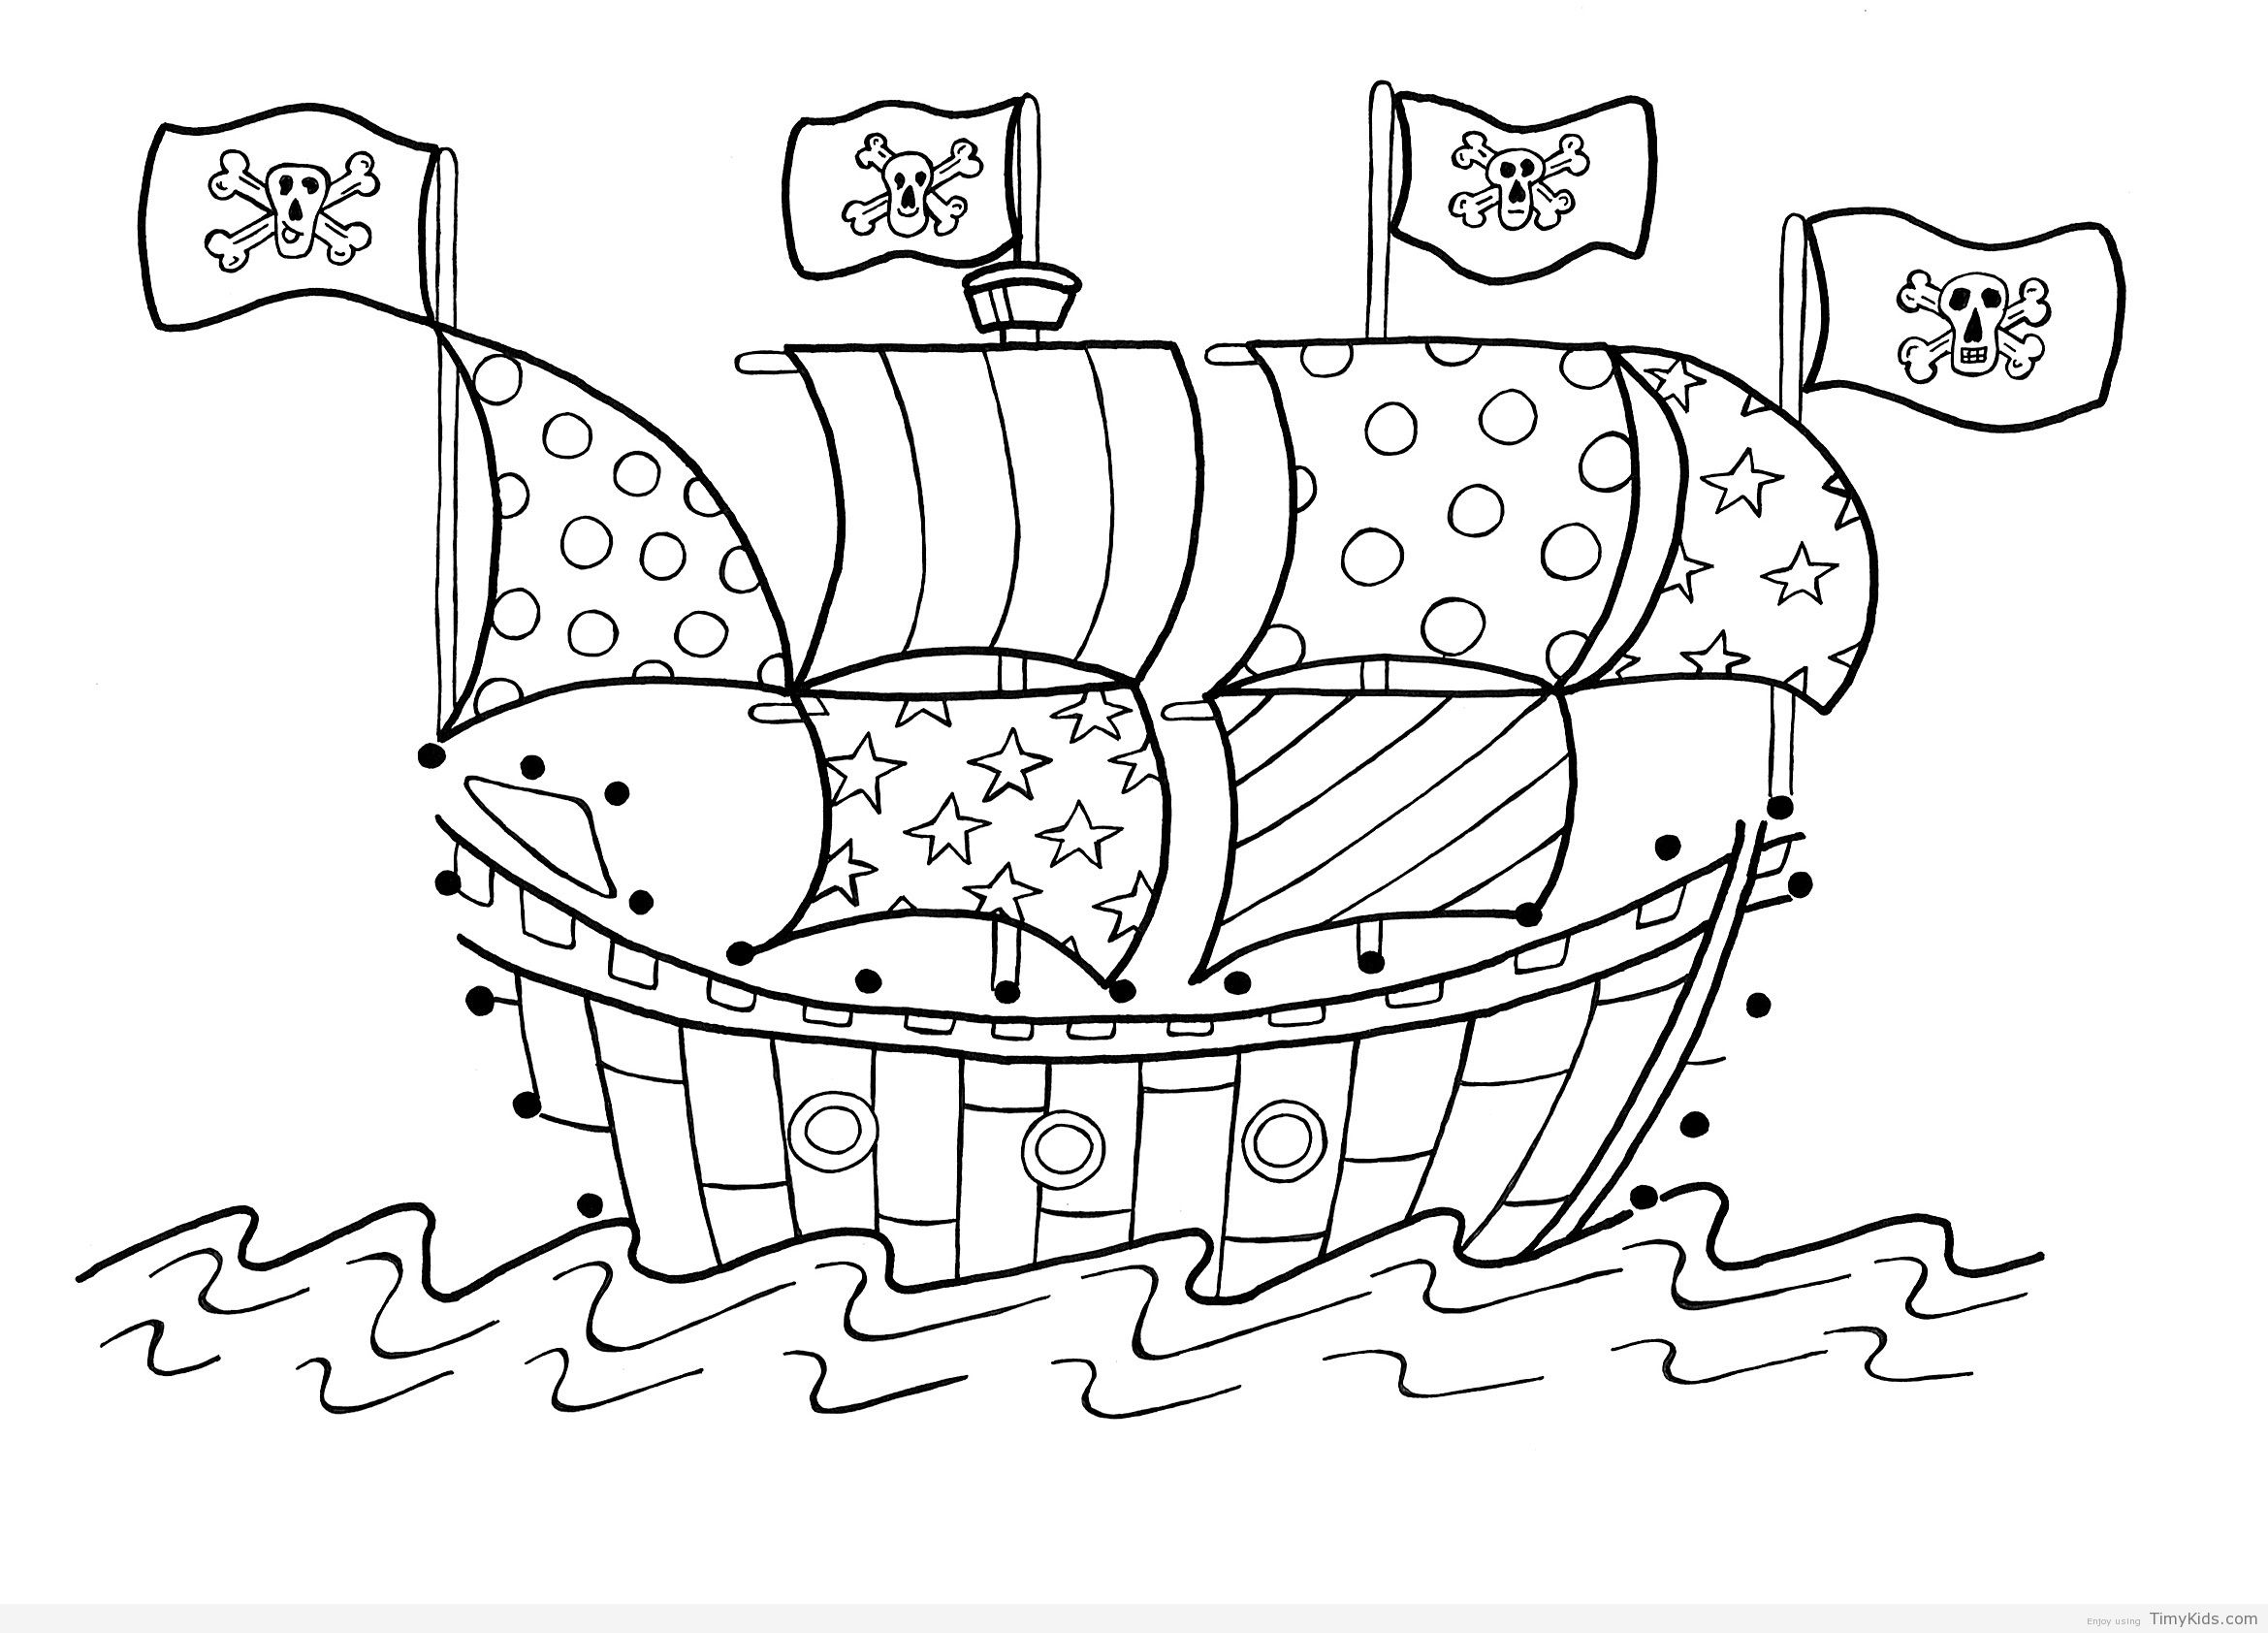 http://timykids.com/pirates-coloring-page.html | Colorings | Pinterest